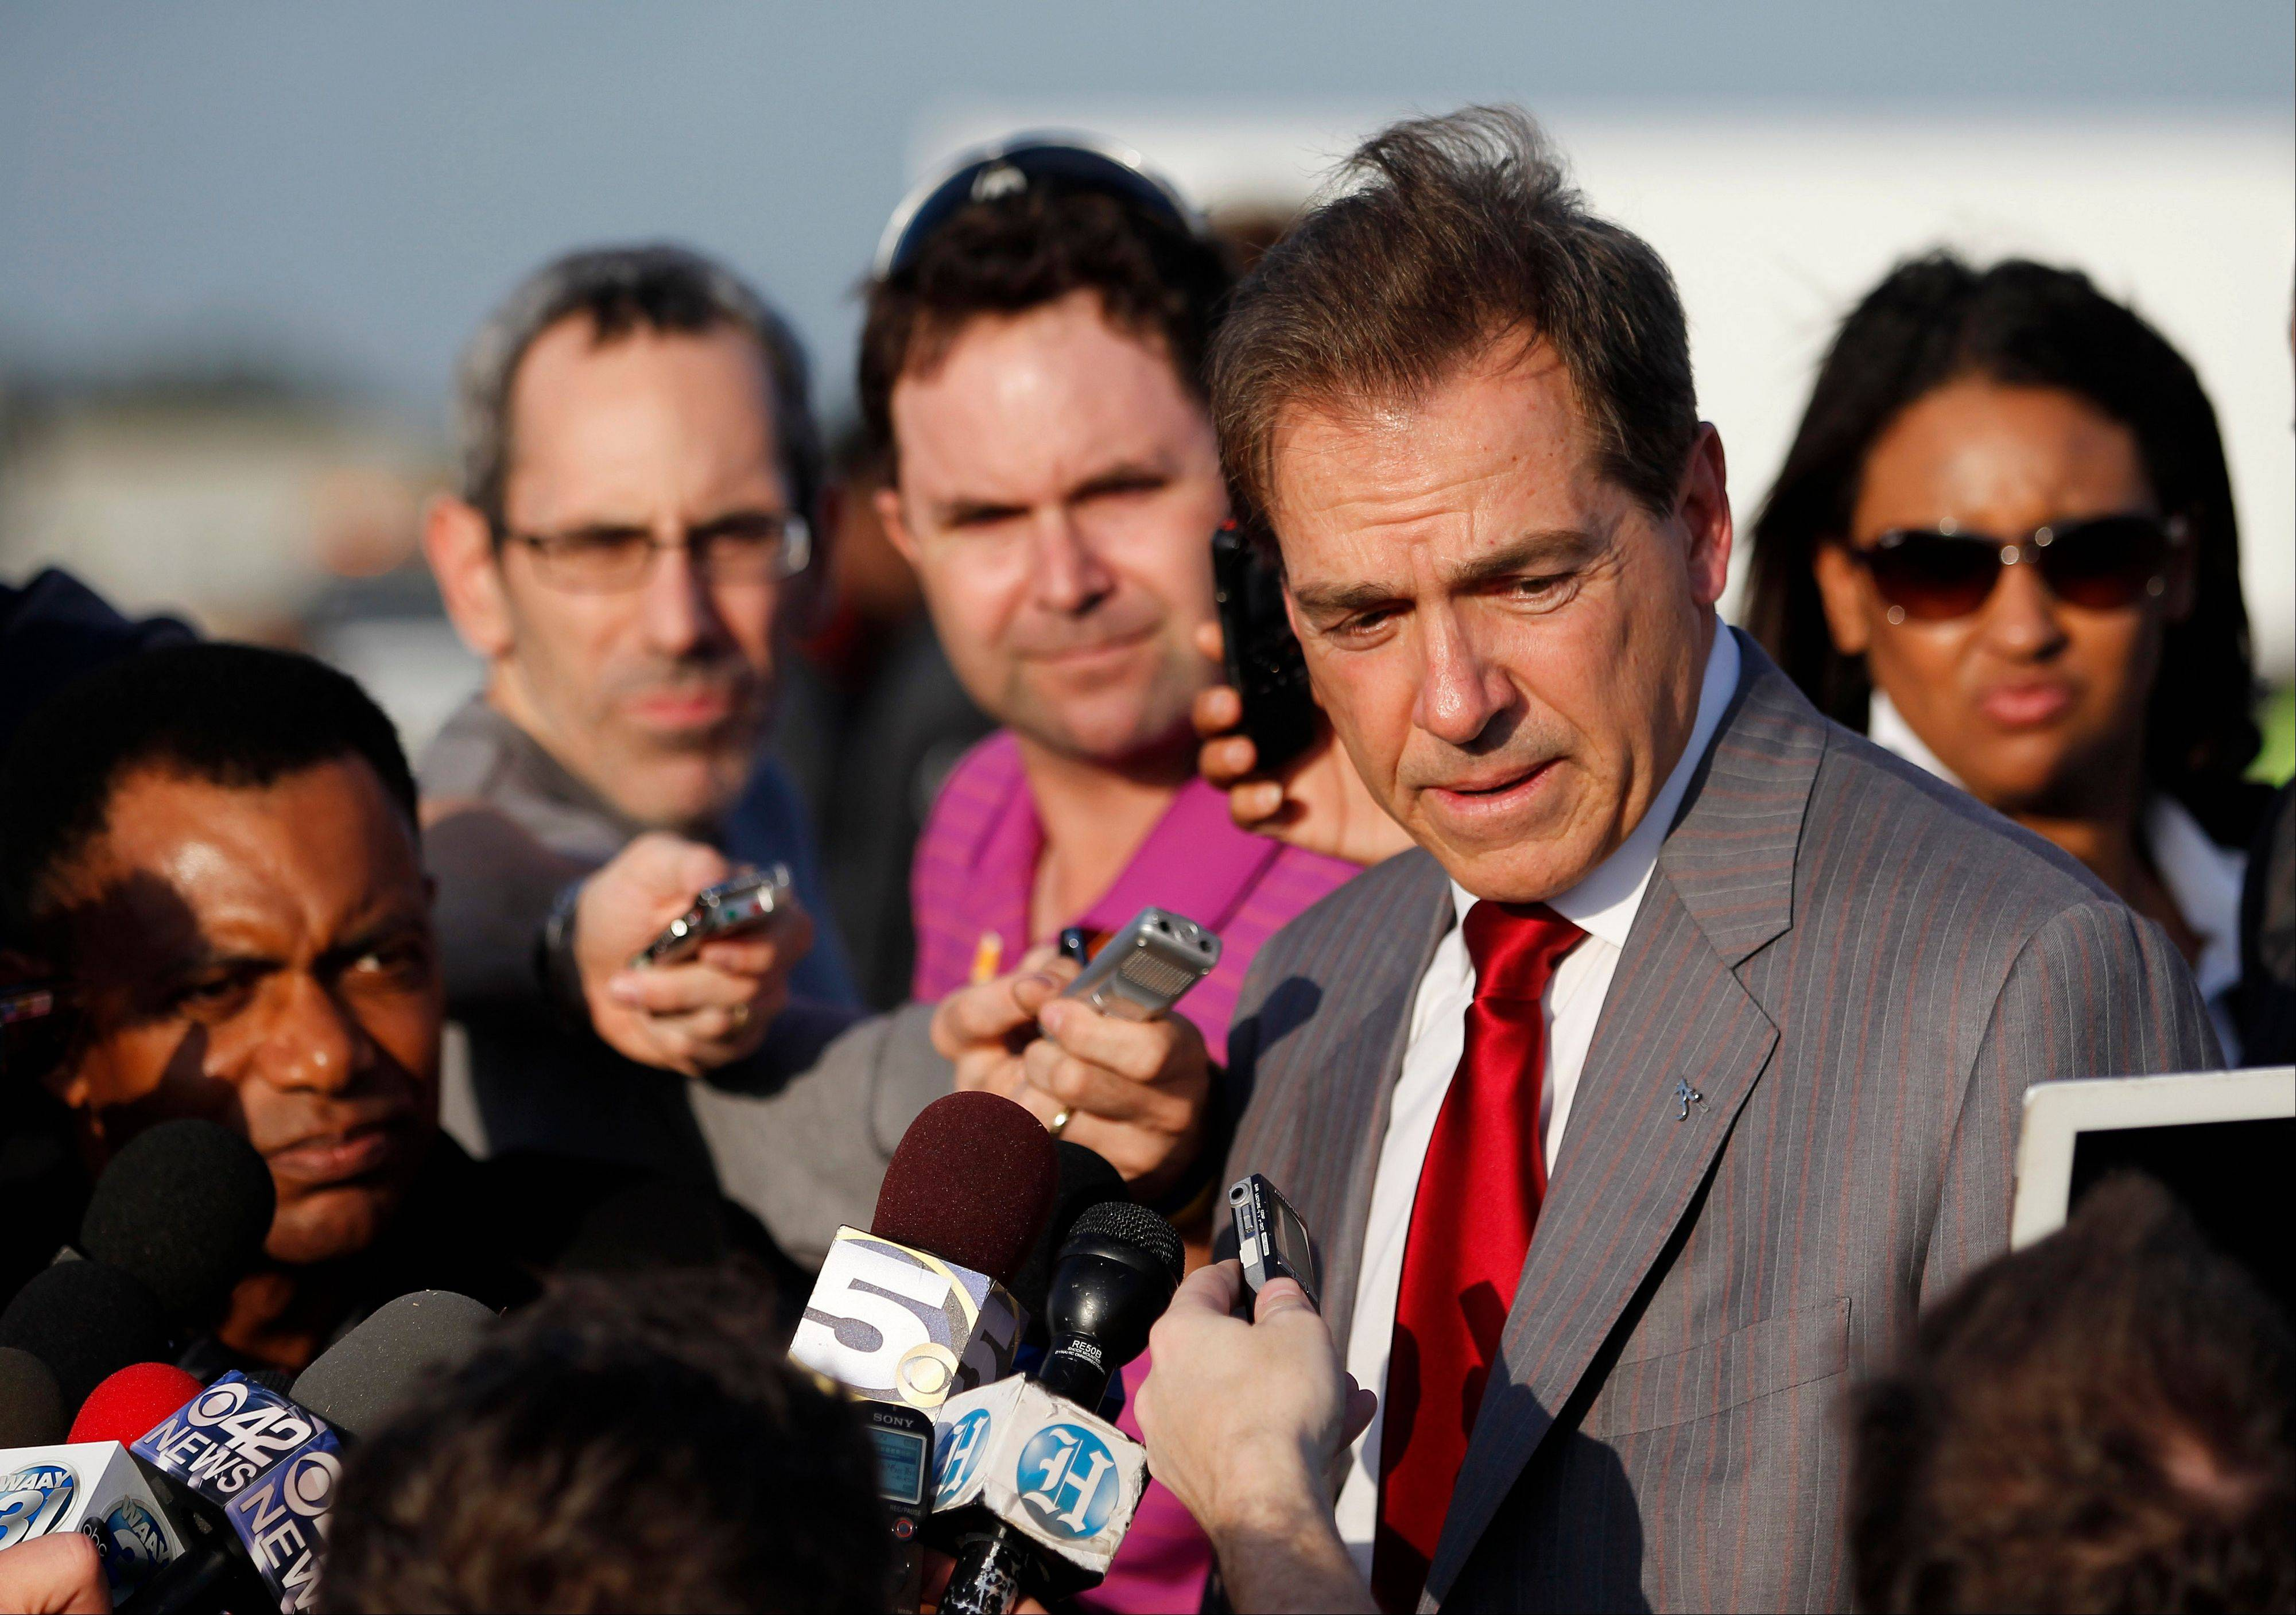 Alabama head coach Nick Saban, foreground, speaks to the media Wednesday after the Crimson Tide arrived at Miami International Airport.